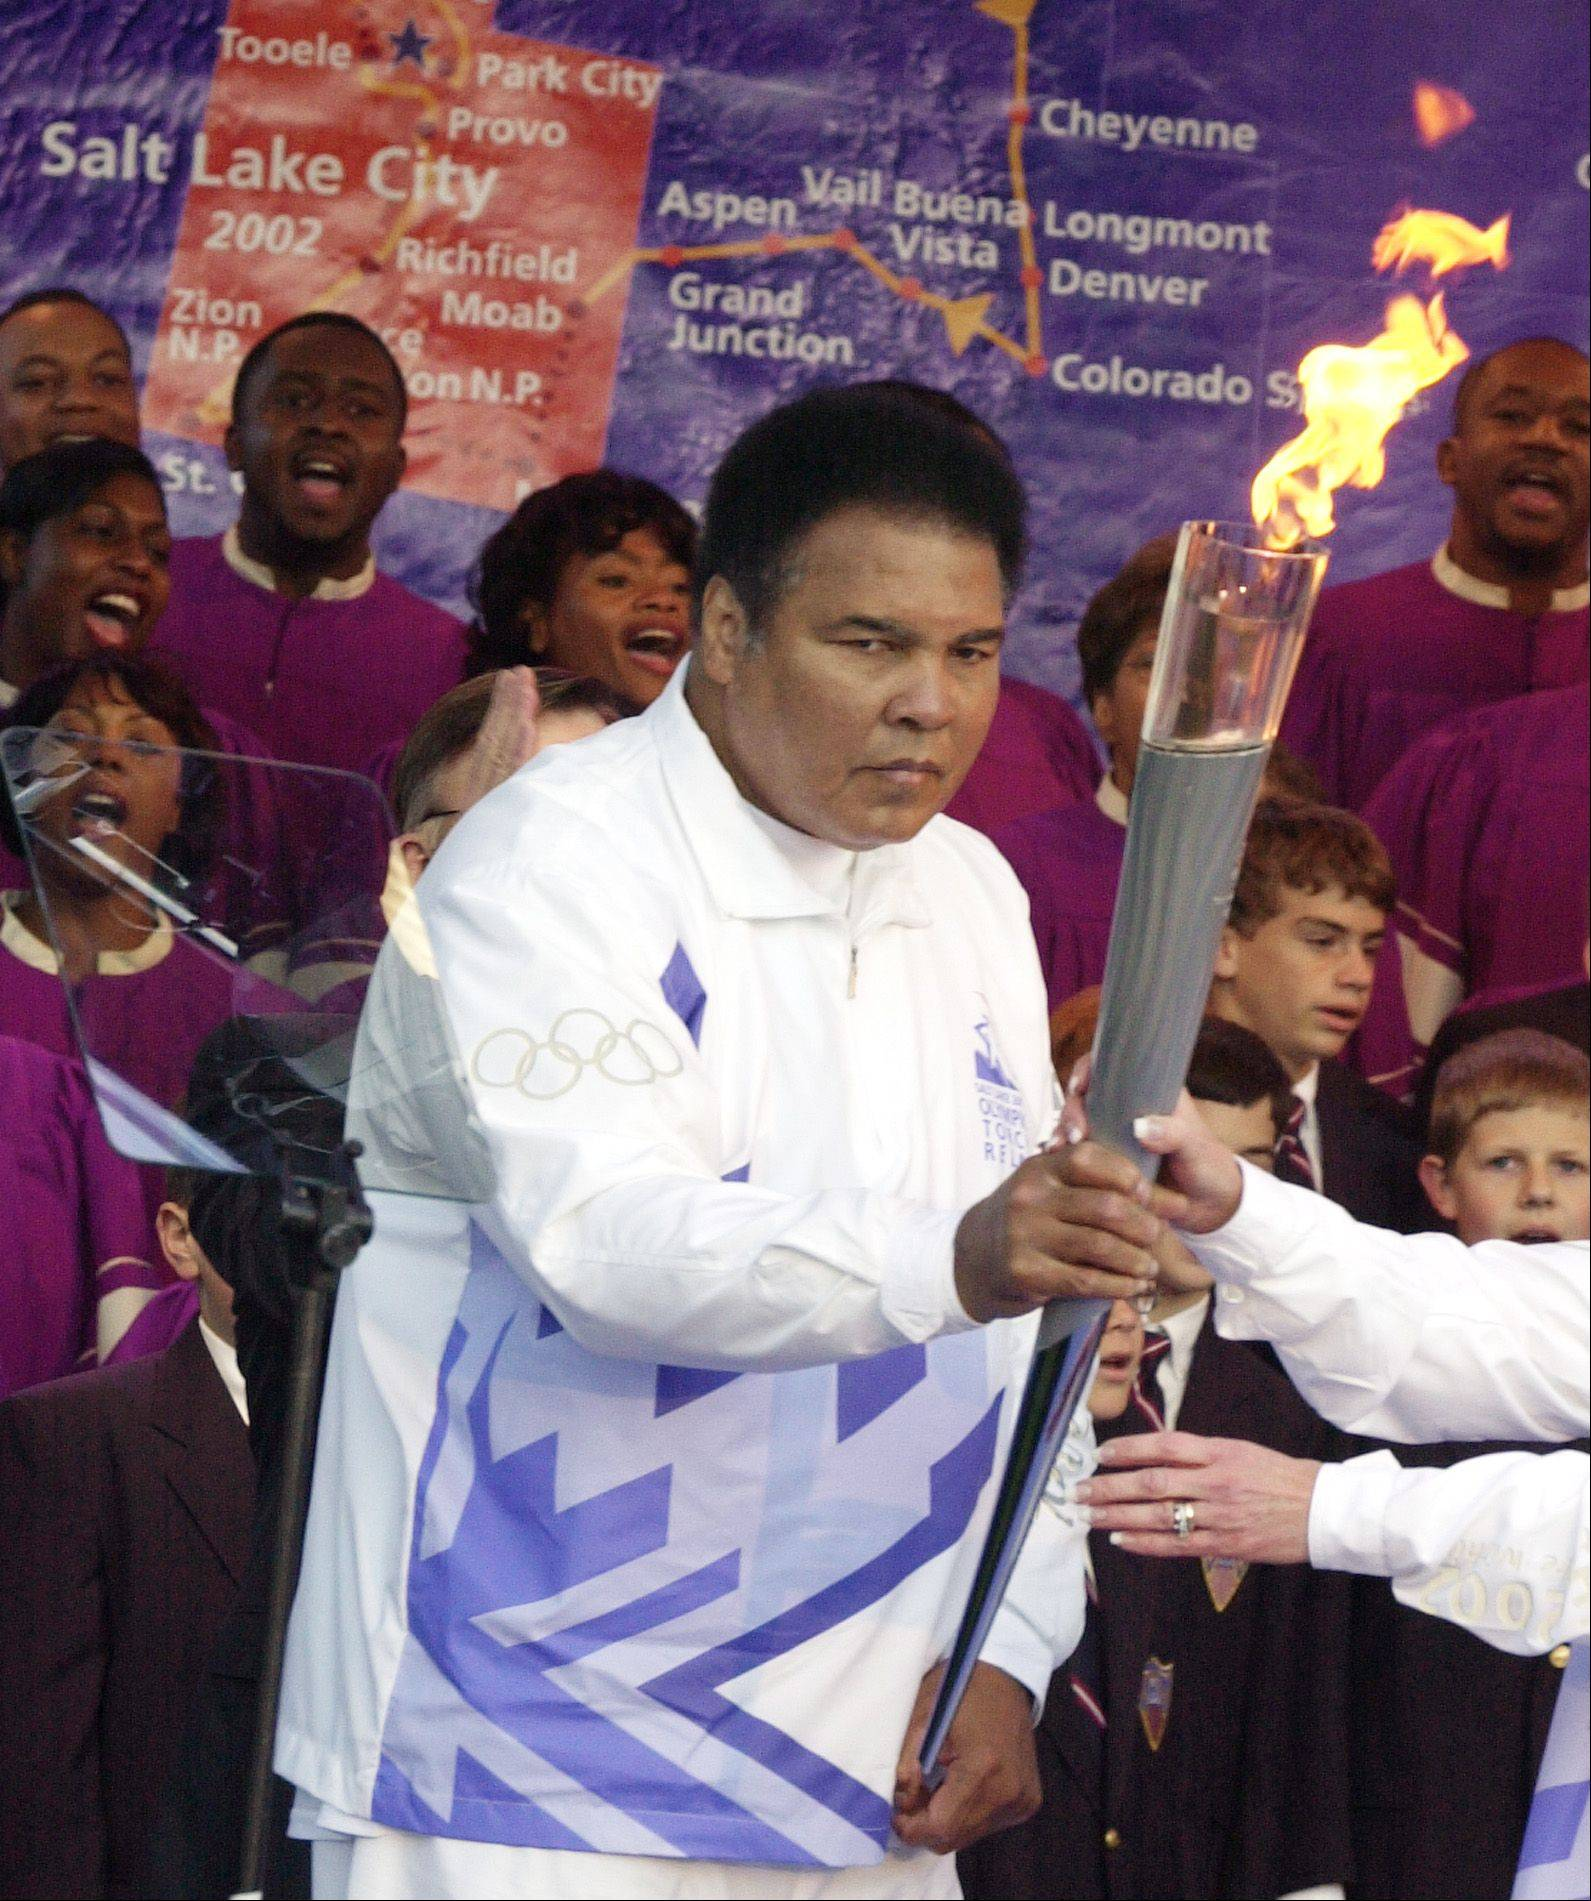 Boxing legend Muhammad Ali holds the Olympic torch in front of a map showing the torch's route to runner Peggy Fleming, 1968 figure skating gold medalist, during a ceremony at Centennial Olympic Park in Atlanta Tuesday, Dec. 4, 2001. The Olympic torch returned to the United States for the first time since the 1996 Games in Atlanta and was passed from one gold medalist to another before beginning a 46-state tour to the 2002 Winter Olympics in Salt Lake City.